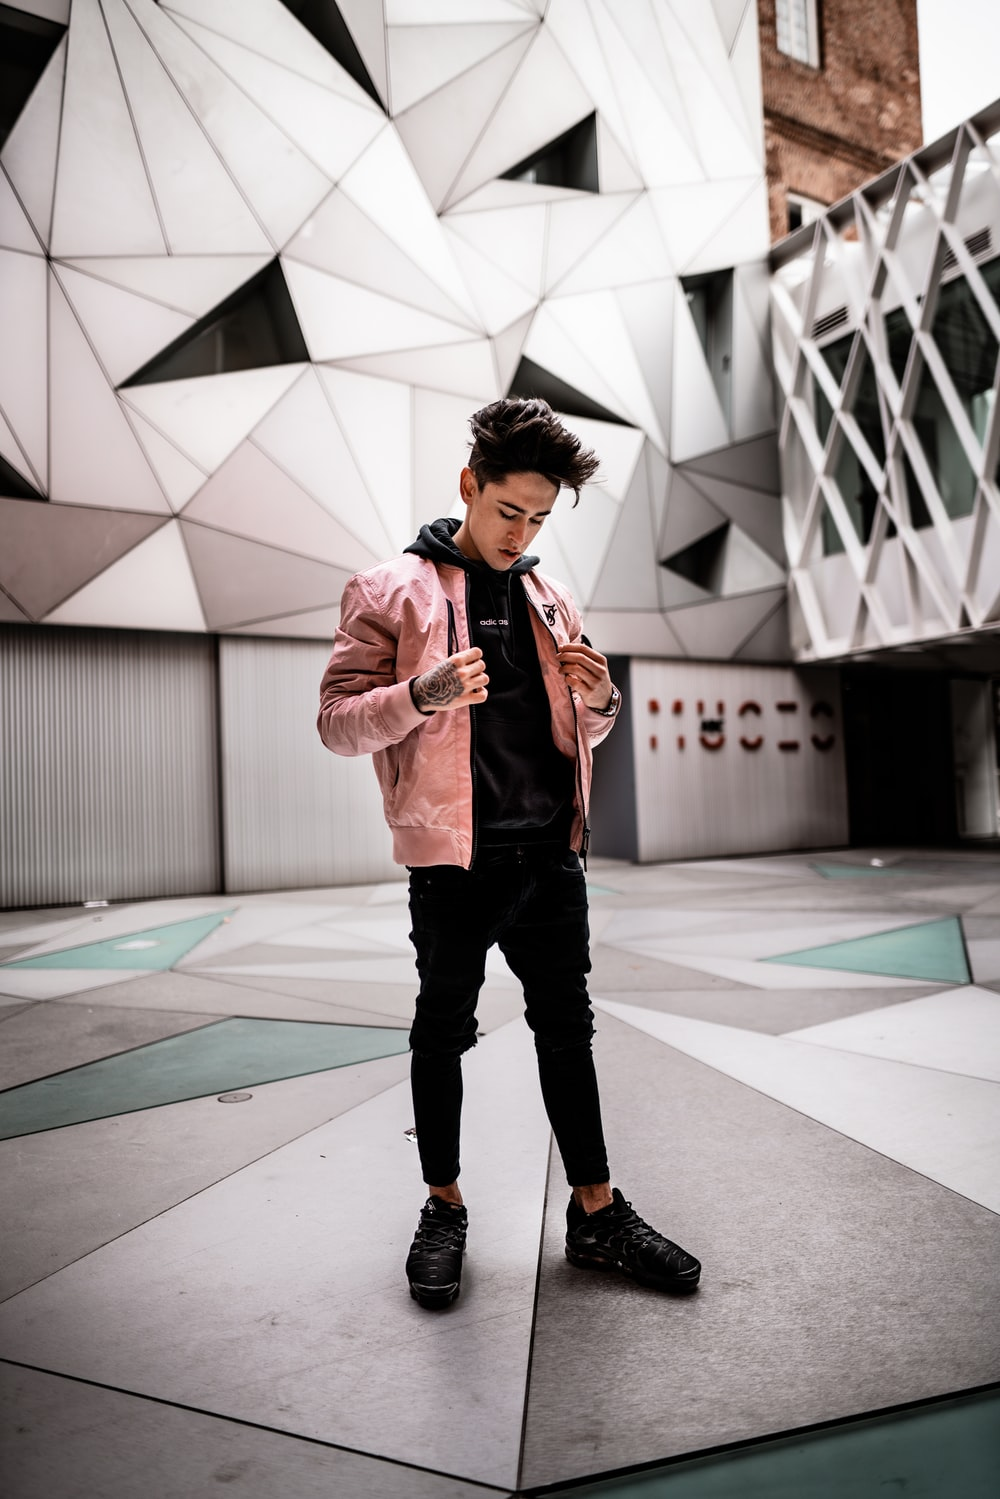 standing man wearing pink jacket looking down inside concrete building